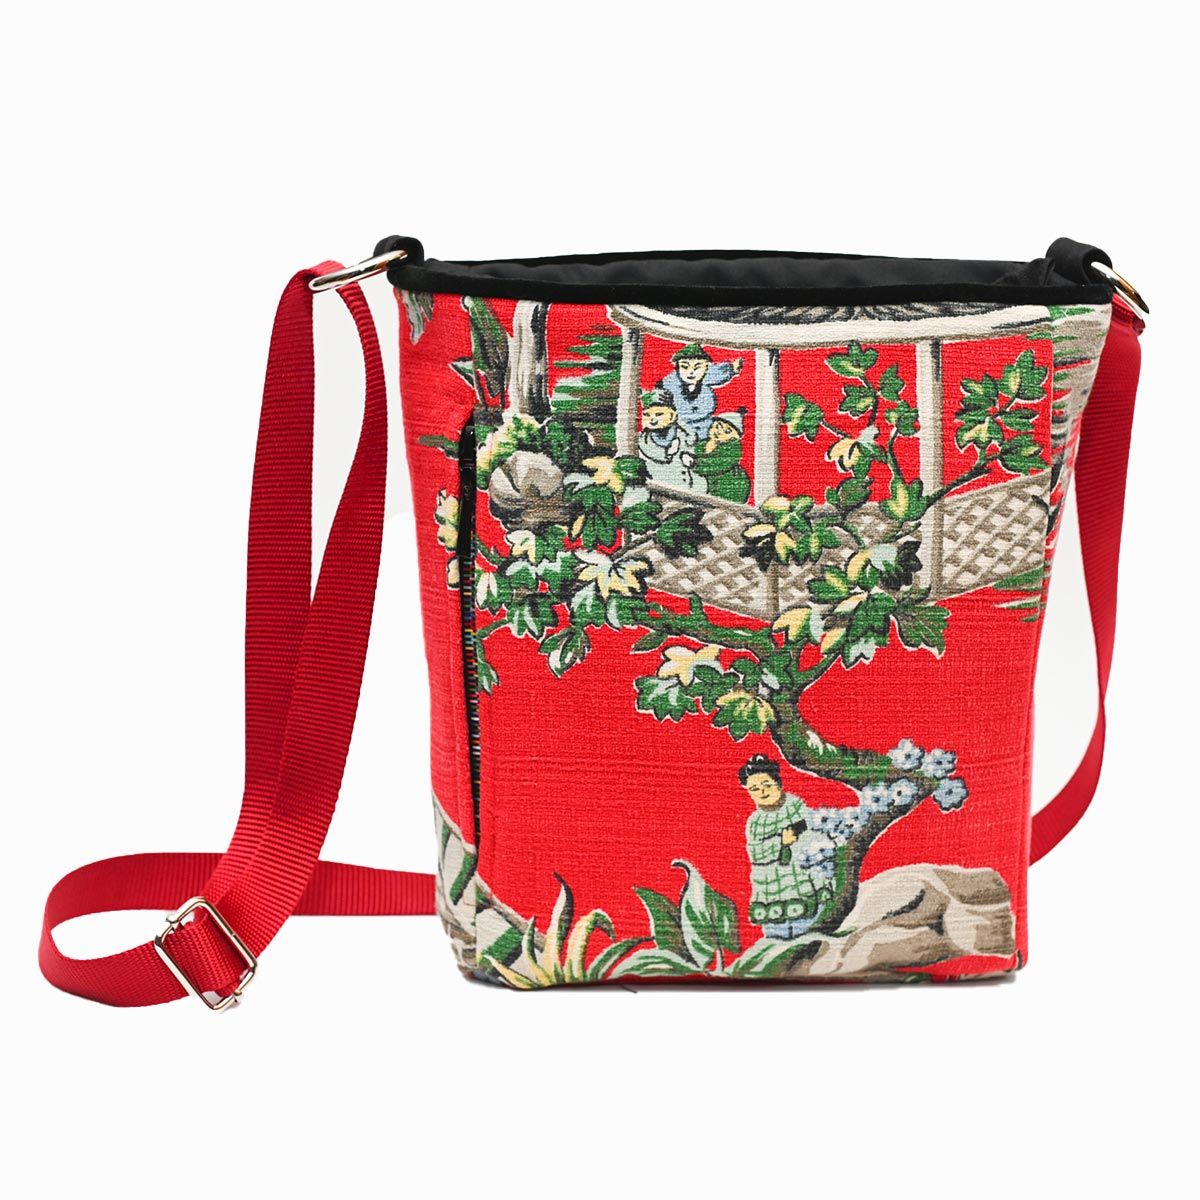 crossbody bag asian motif on cherry red DSC 6529